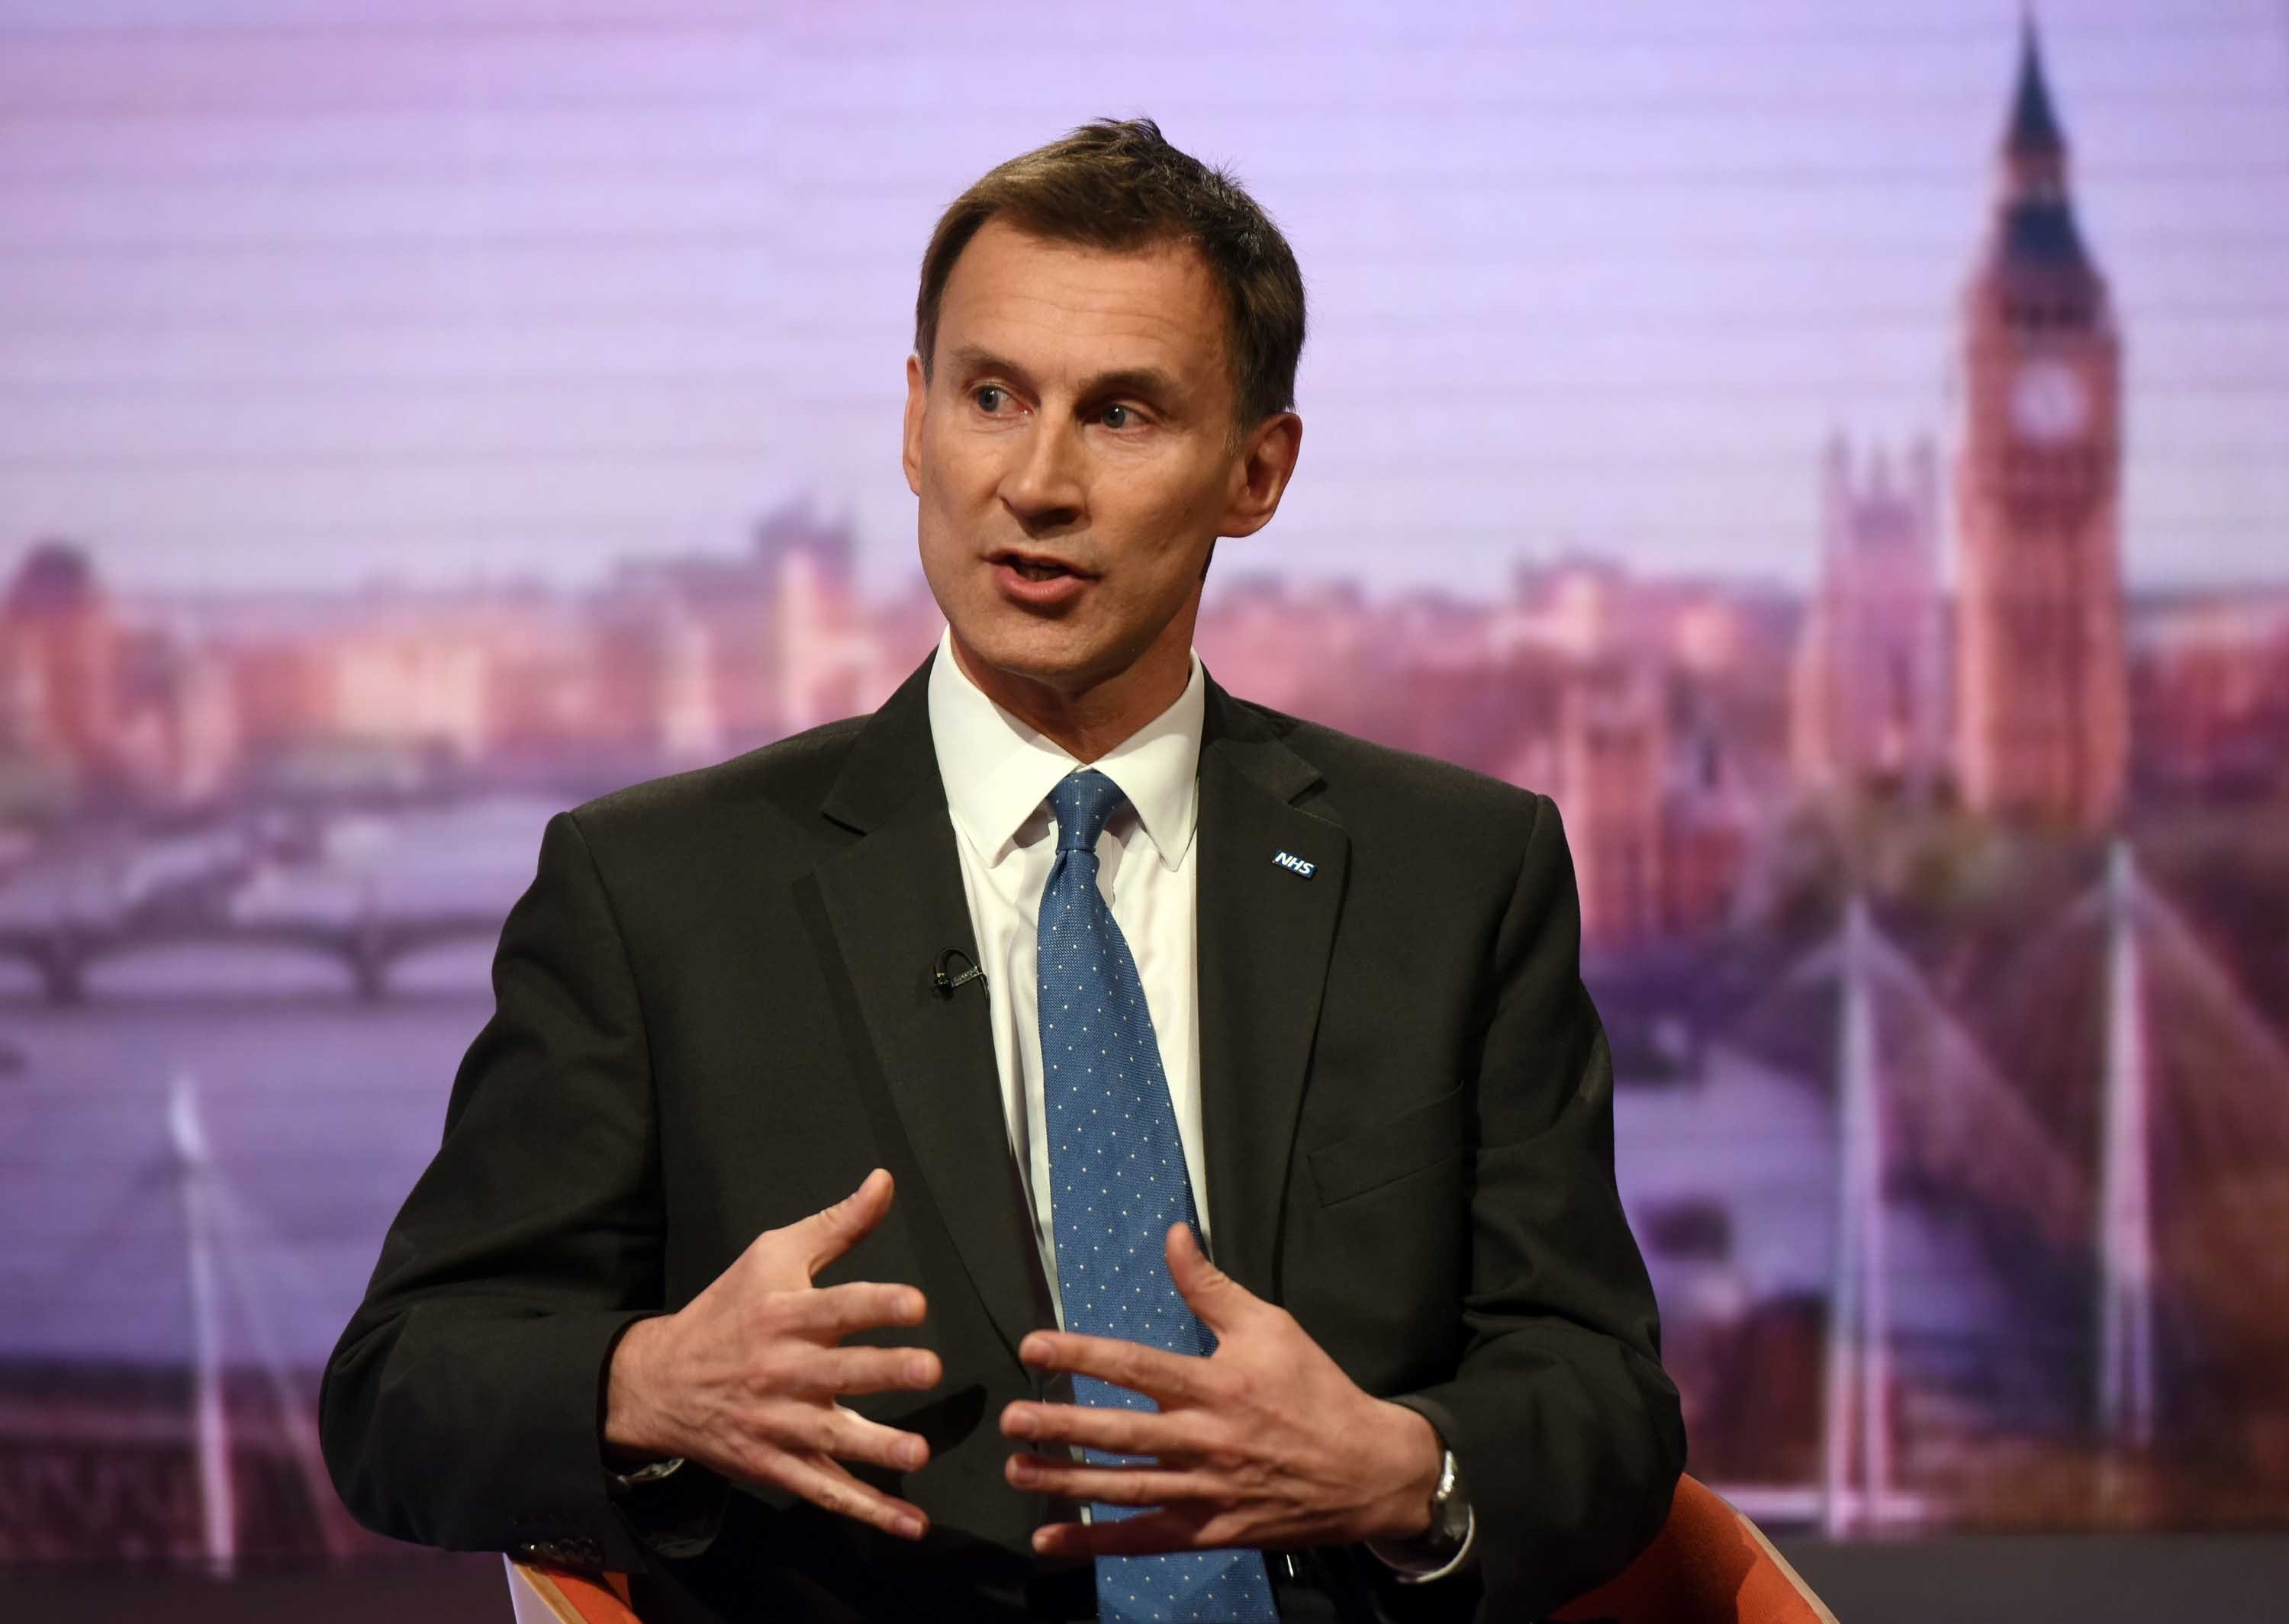 Health Secretary Jeremy Hunt appearing on the BBC One current affairs programme, The Andrew Marr Show.